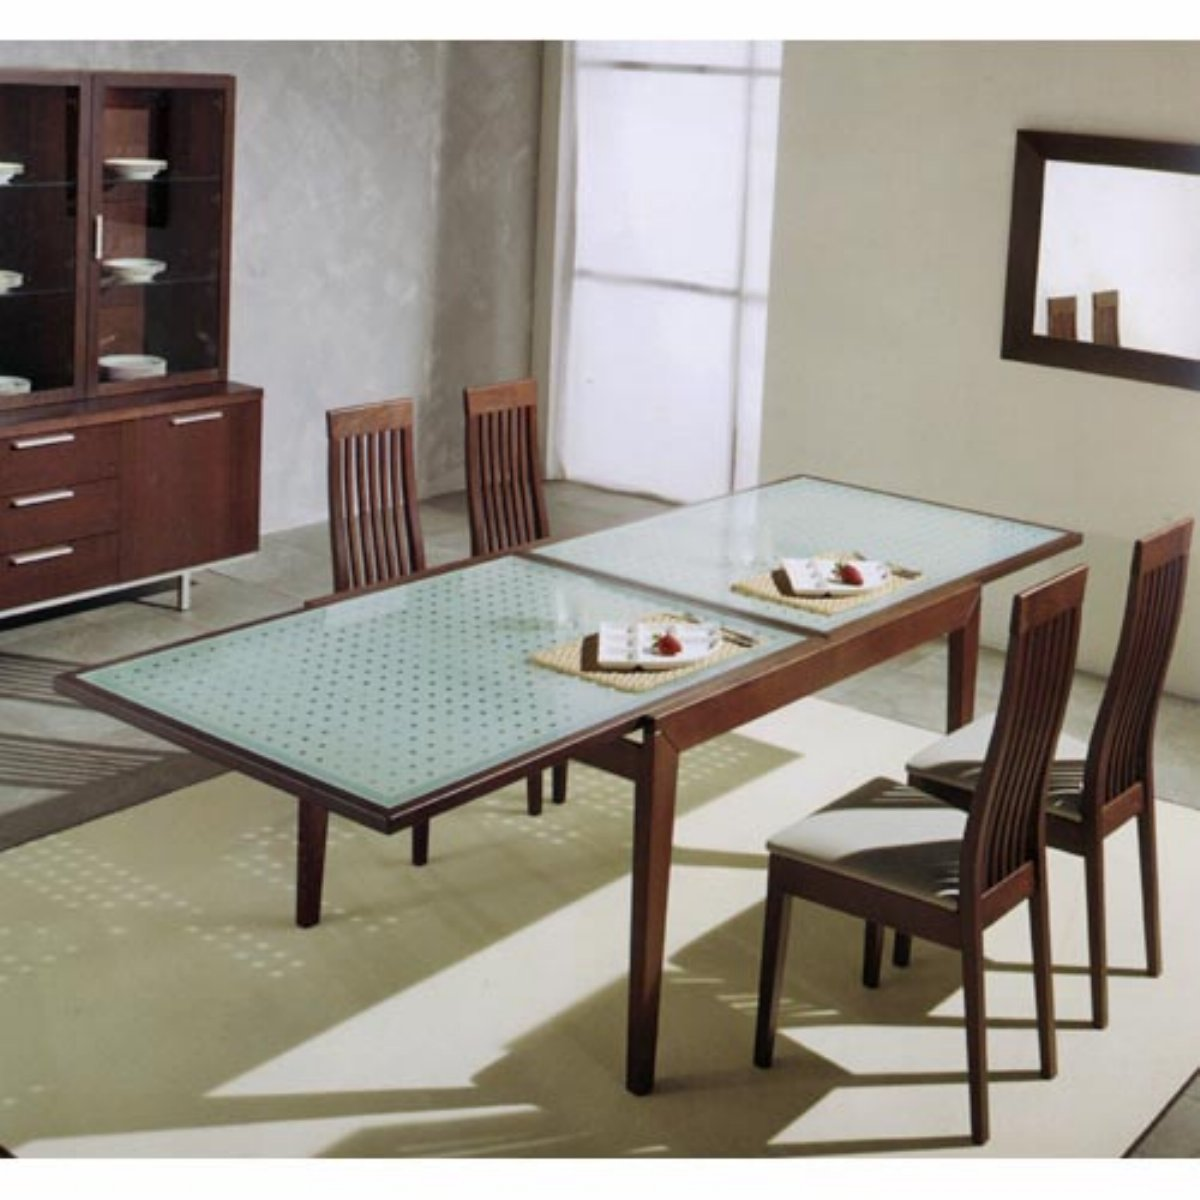 Extendable Glass Top Dining Table Decor IdeasDecor Ideas